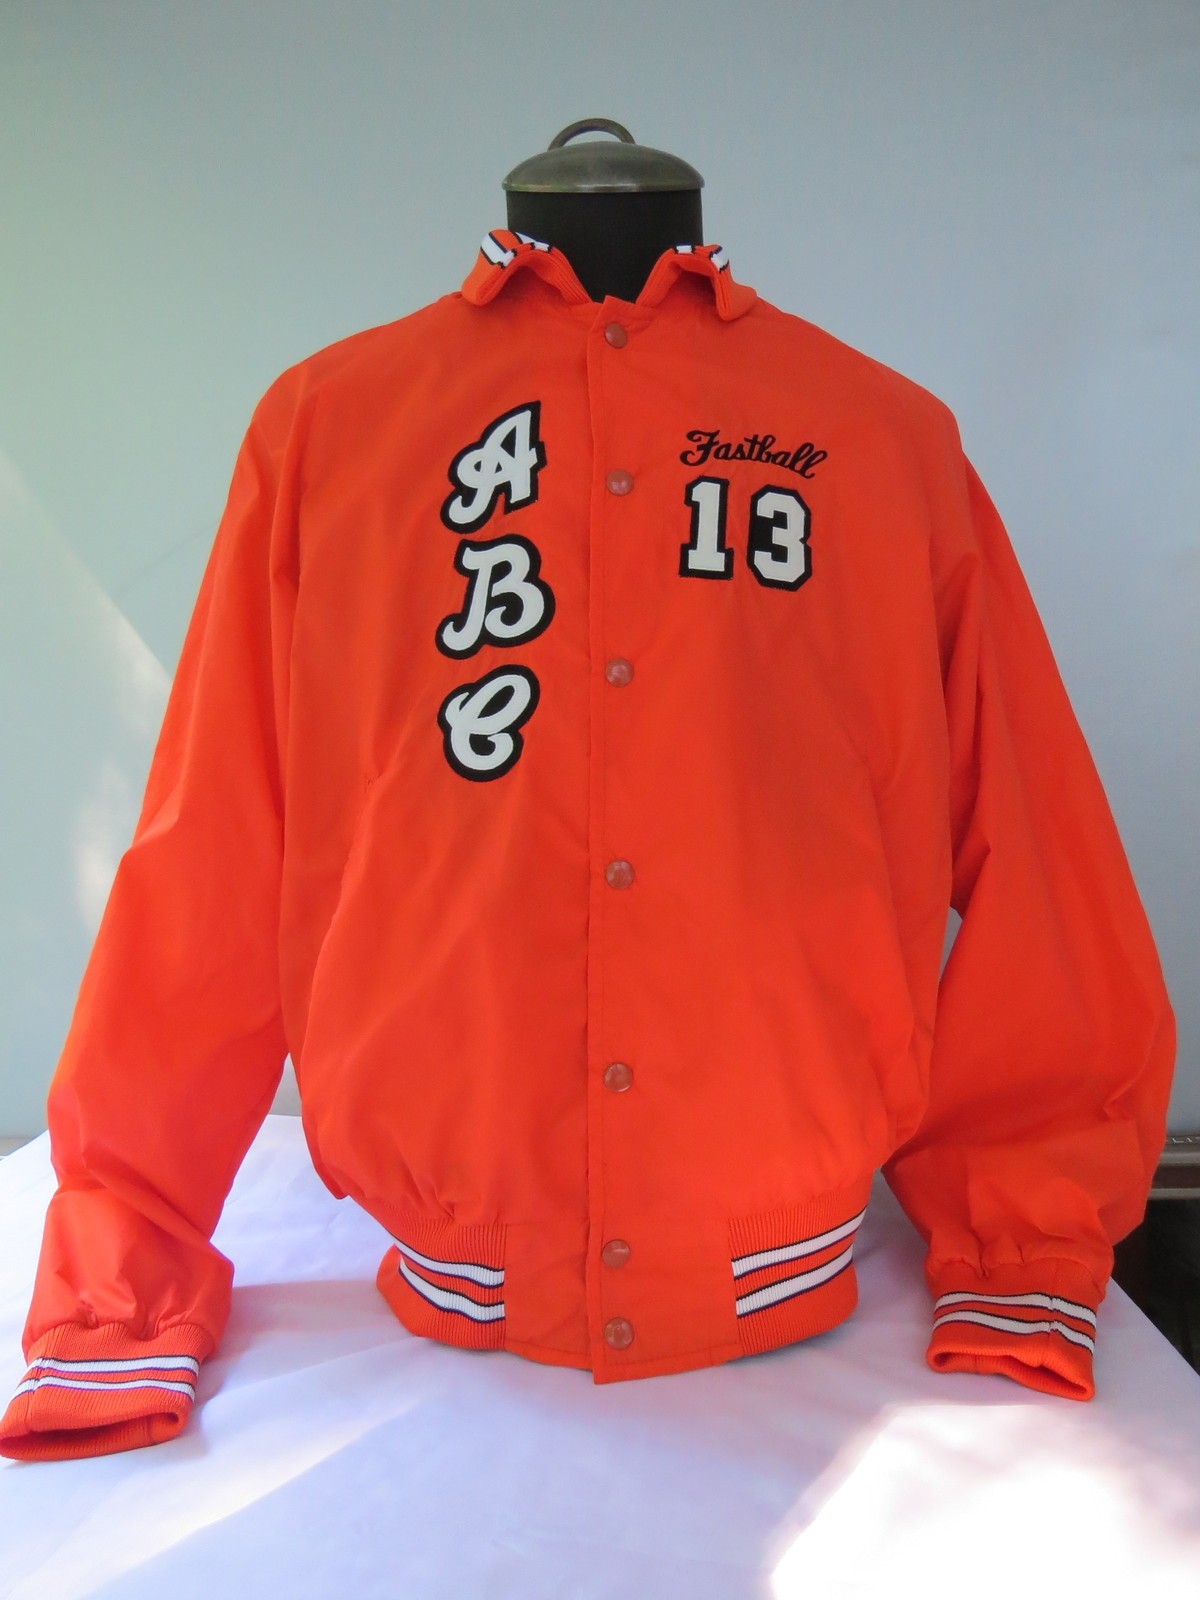 Primary image for Vintage Local Baseball Jacket - Full Crested - Calgary Alberta Canada -Men's XXL